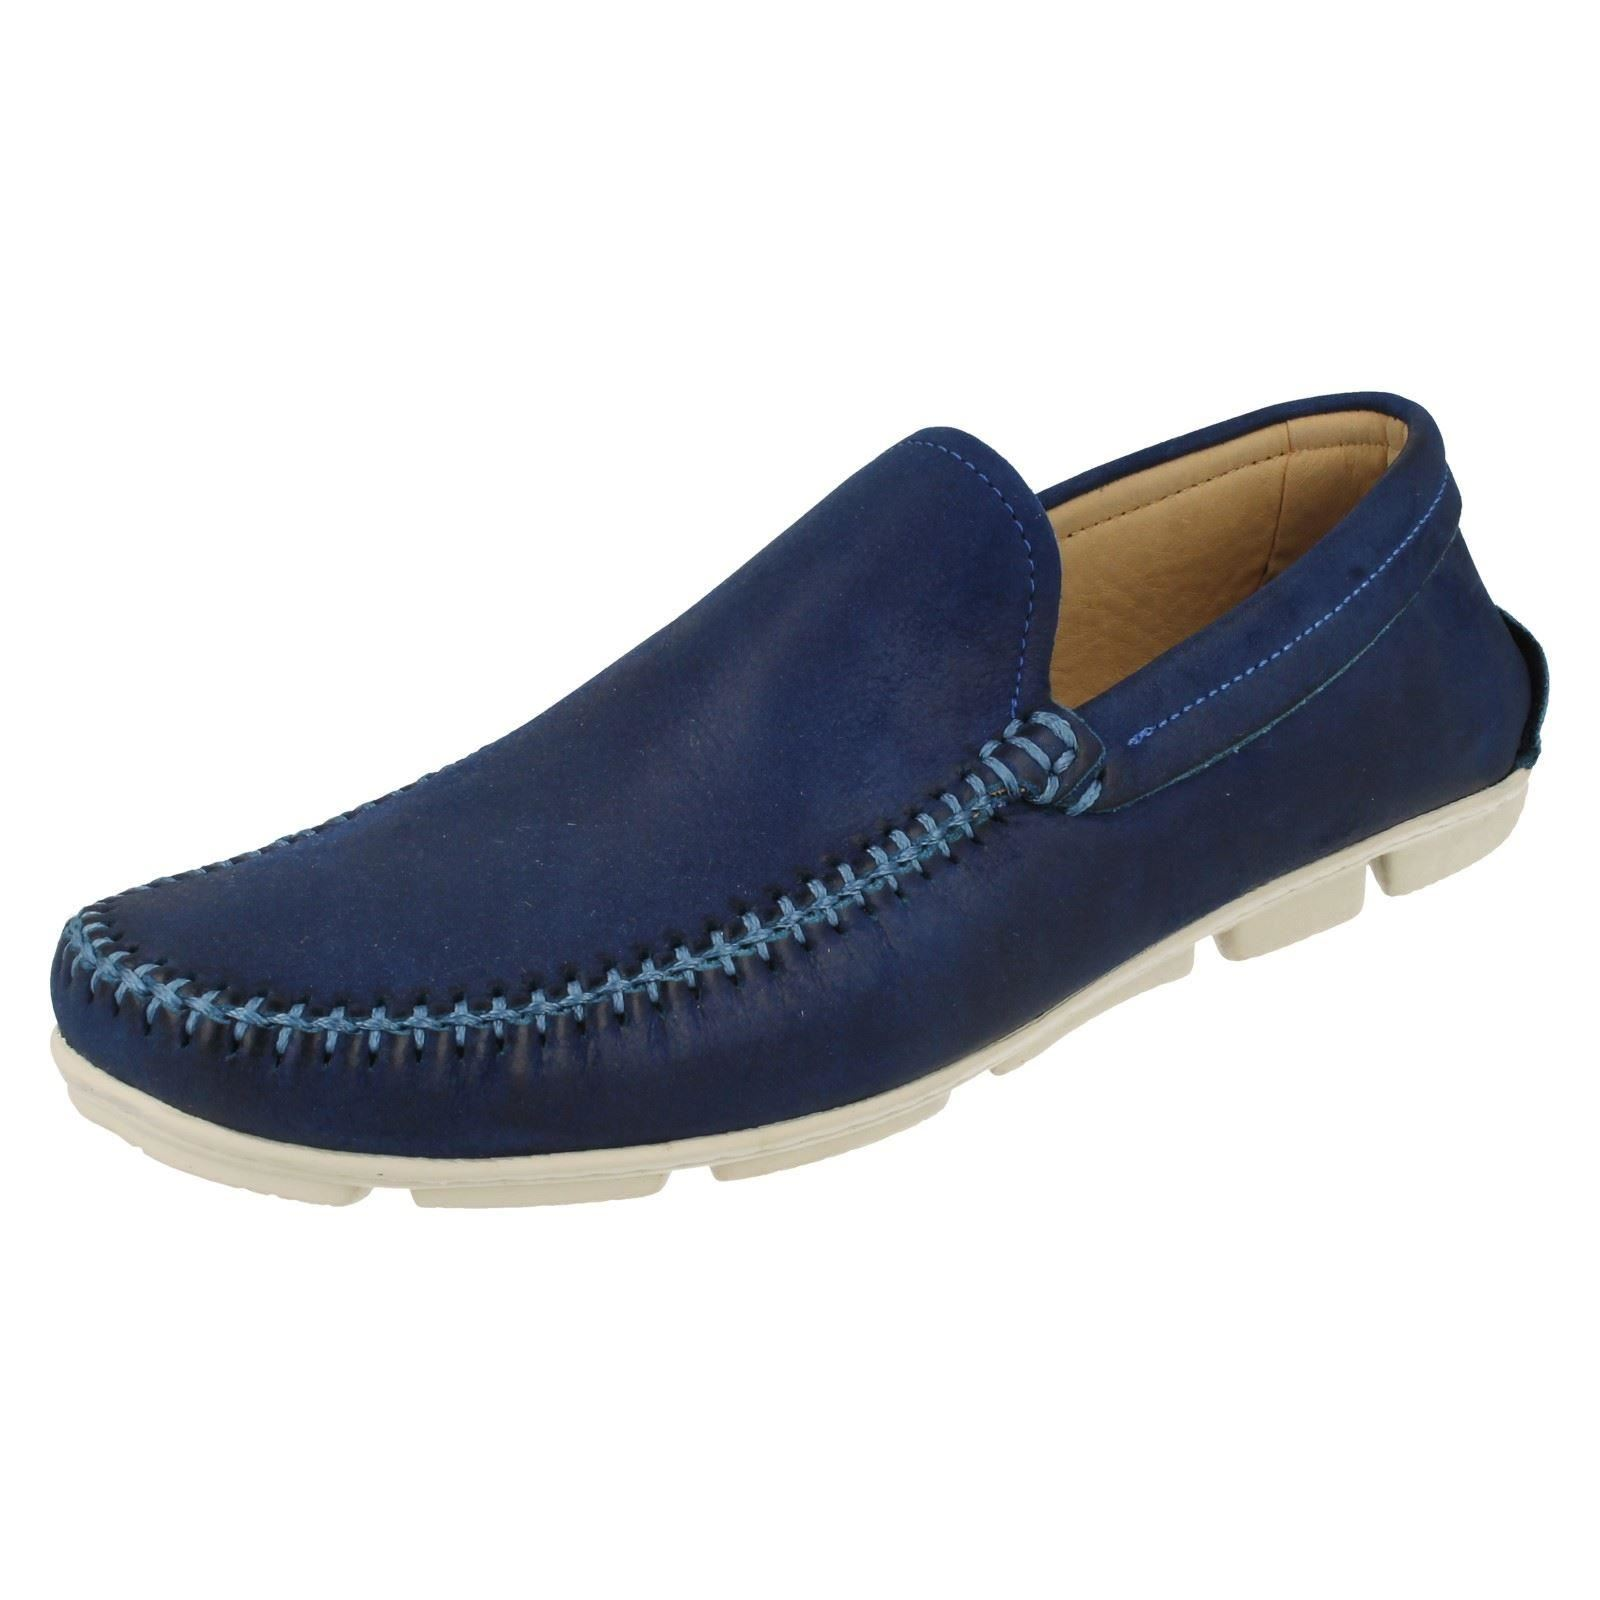 Herren Herren  Anatomic Aruja Slip On Loafers 72b4eb